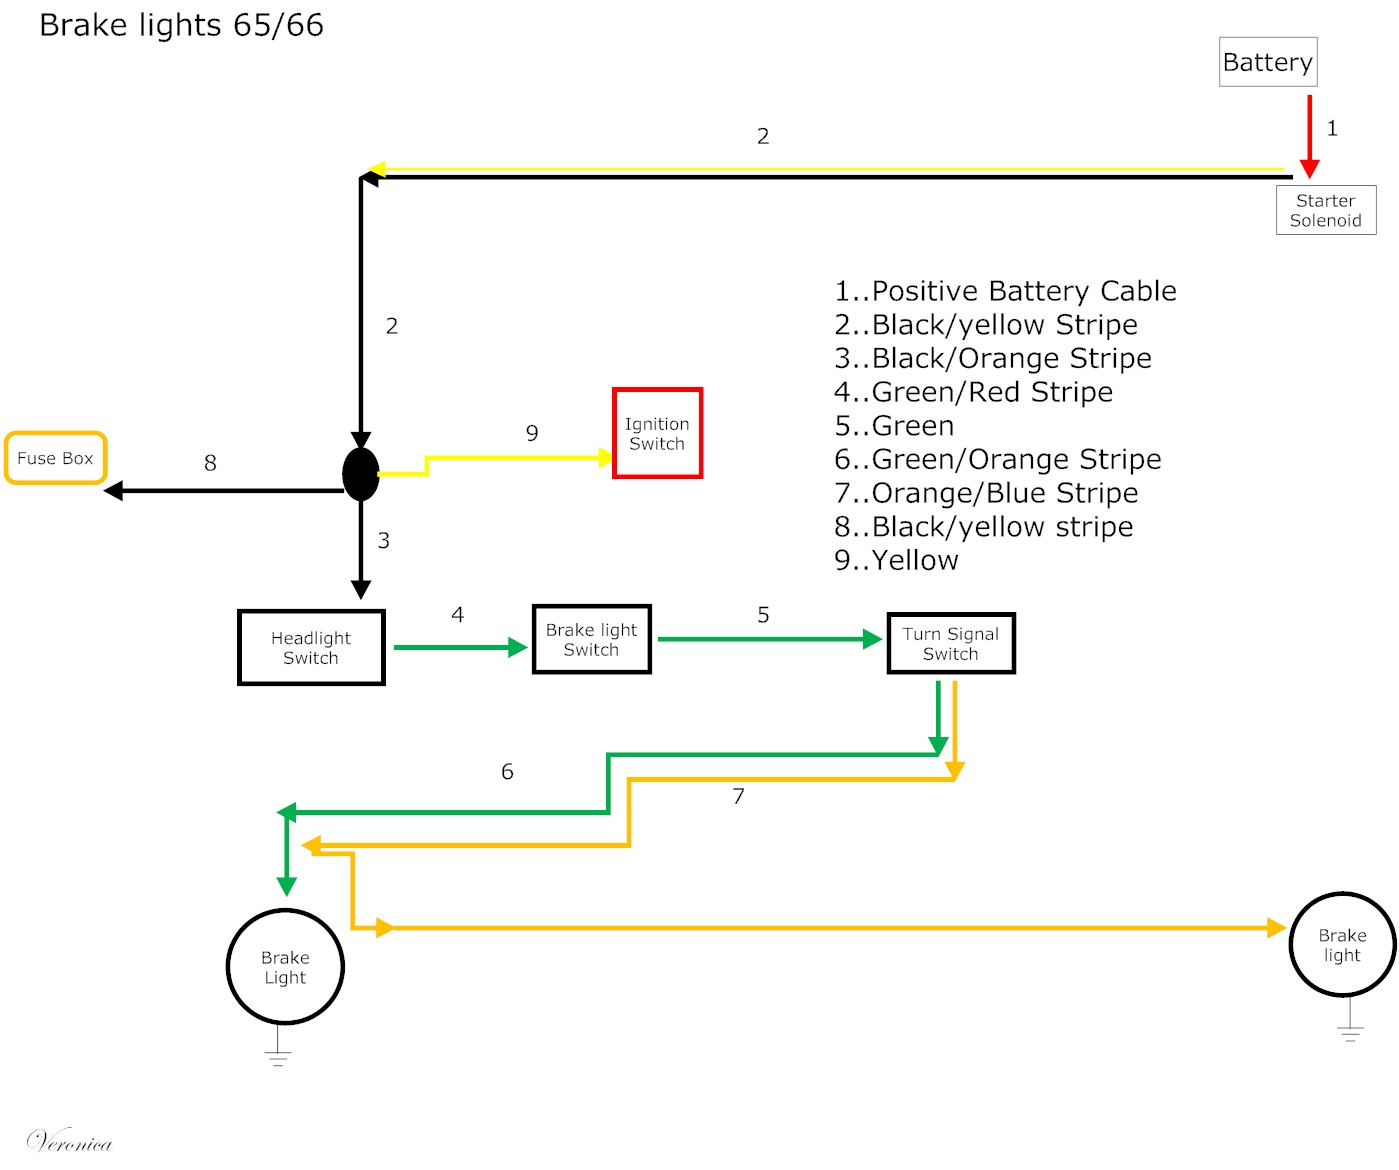 1984 Camaro Headlight Switch Wiring Diy Enthusiasts Diagrams Diagram Tailight U2022 Rh Msblog Co 1998 Dodge Ram Pull